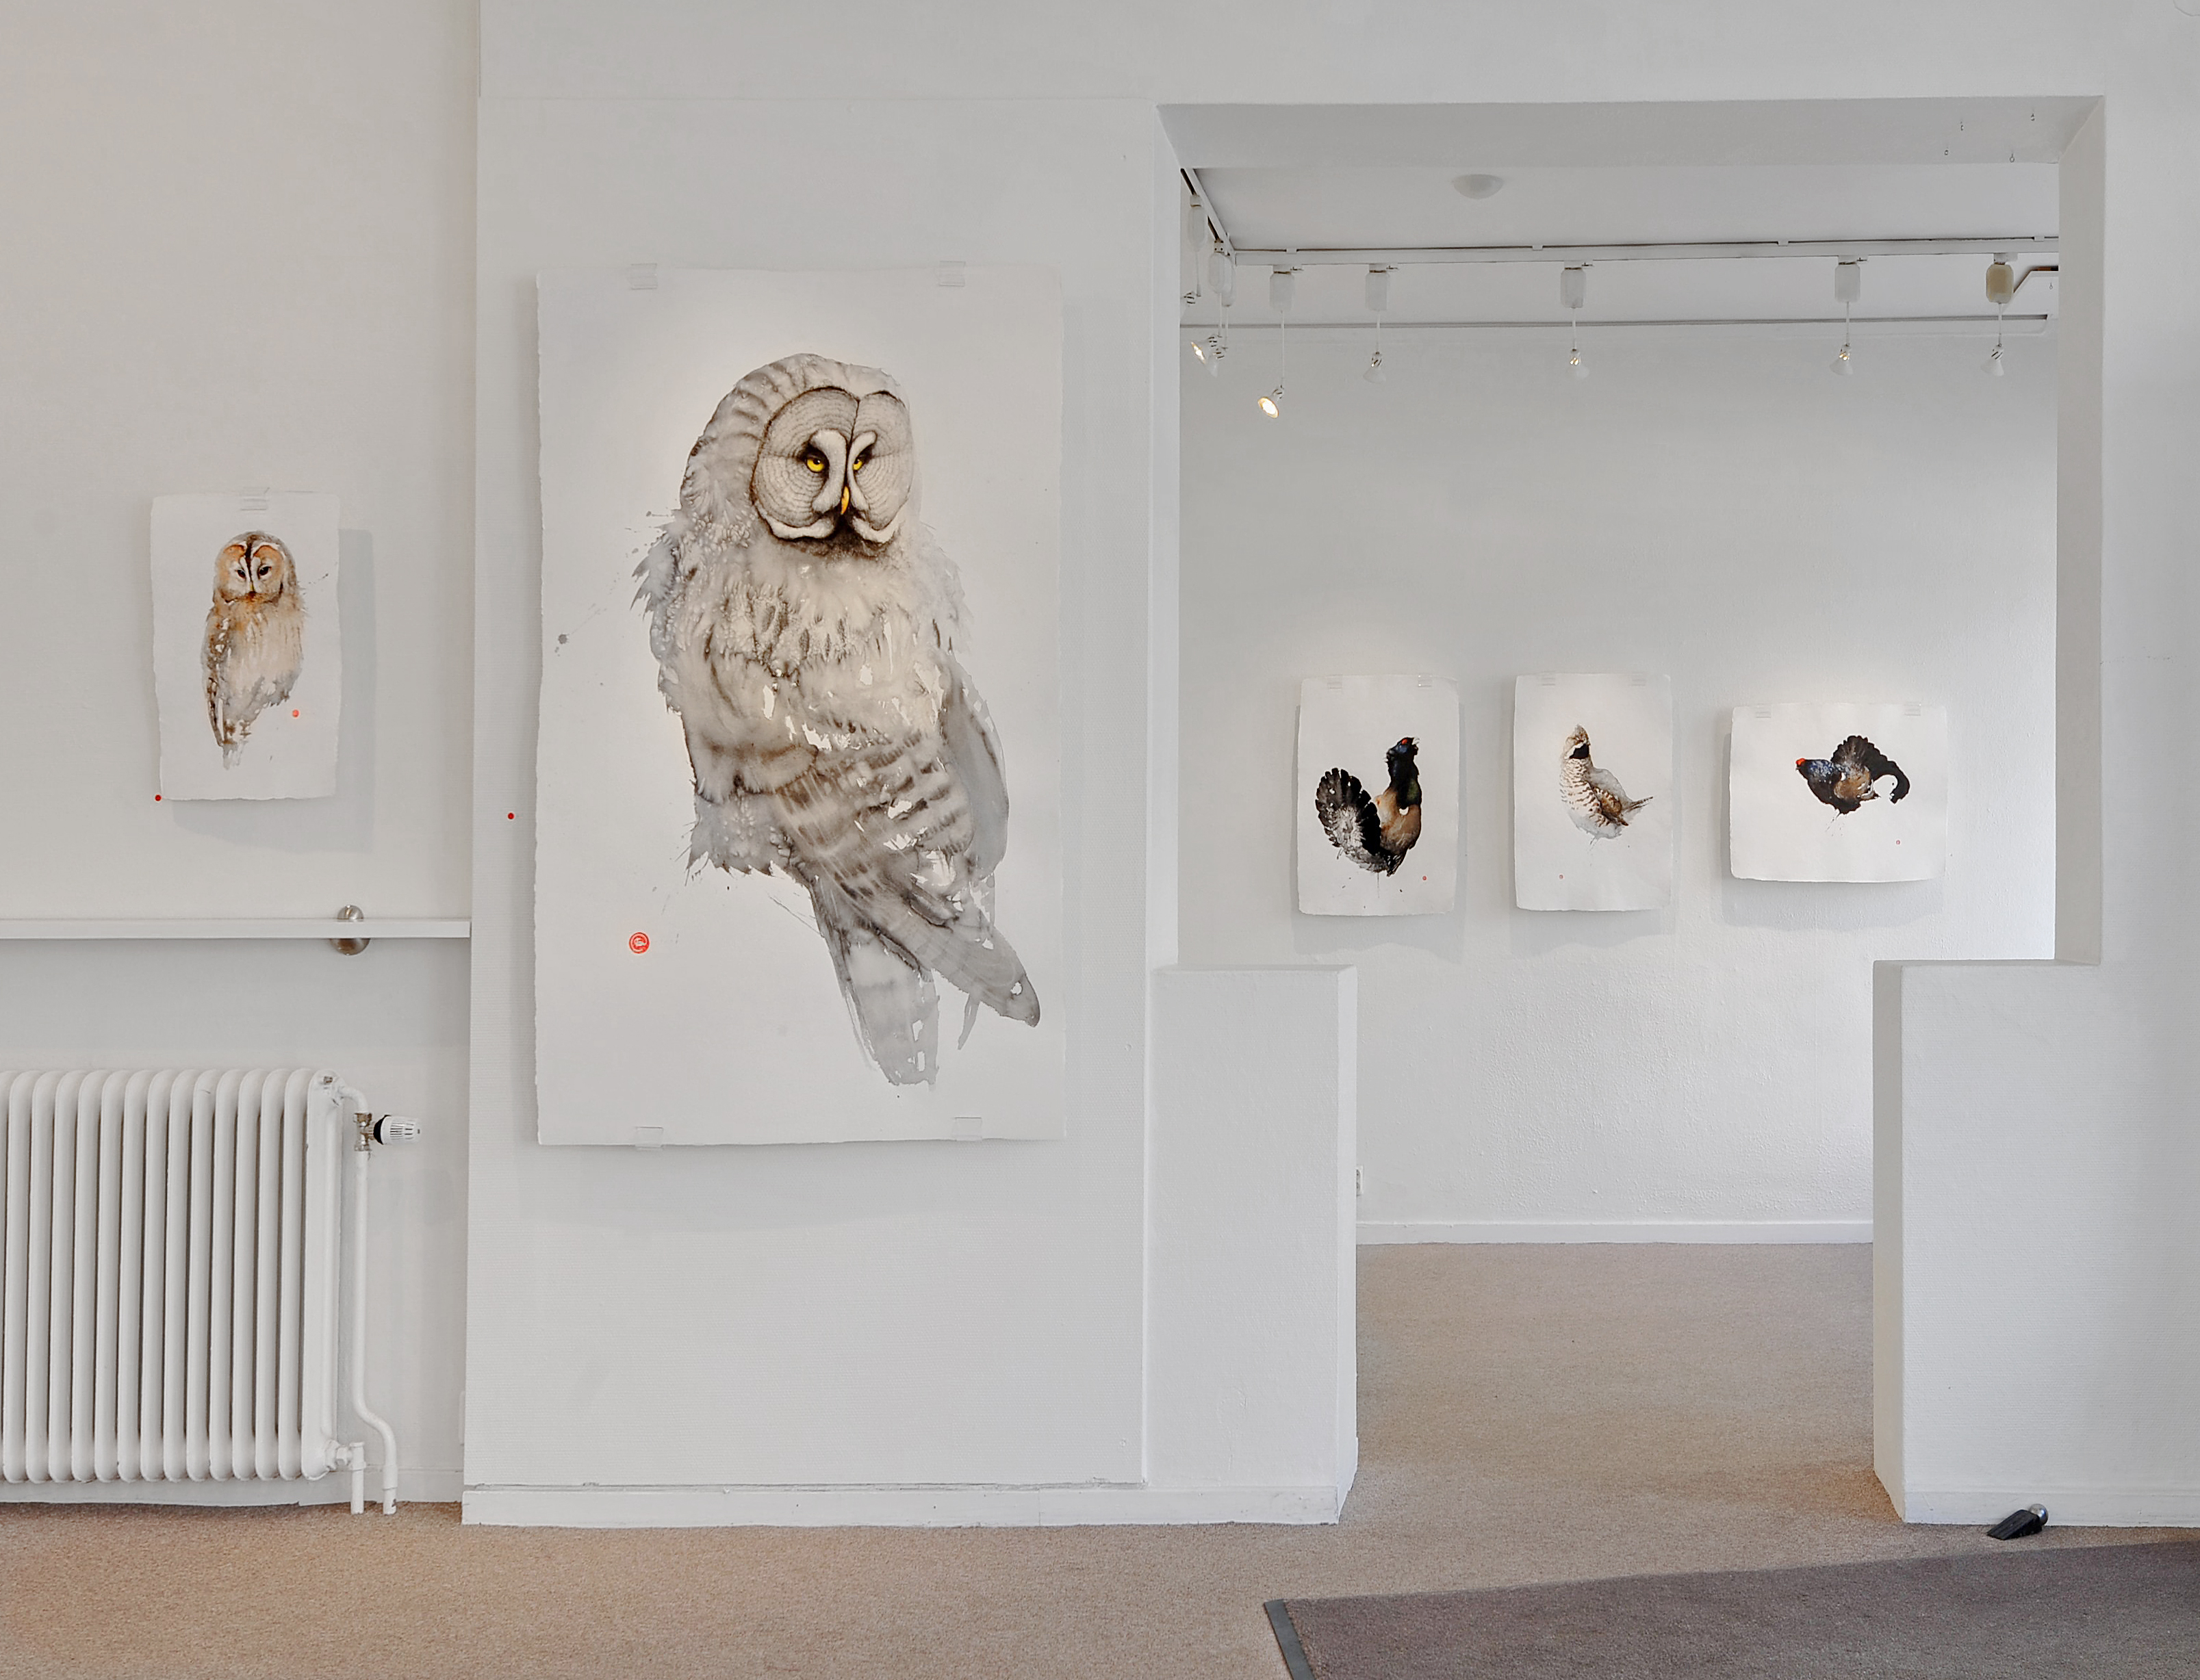 Lilla galleriet 2